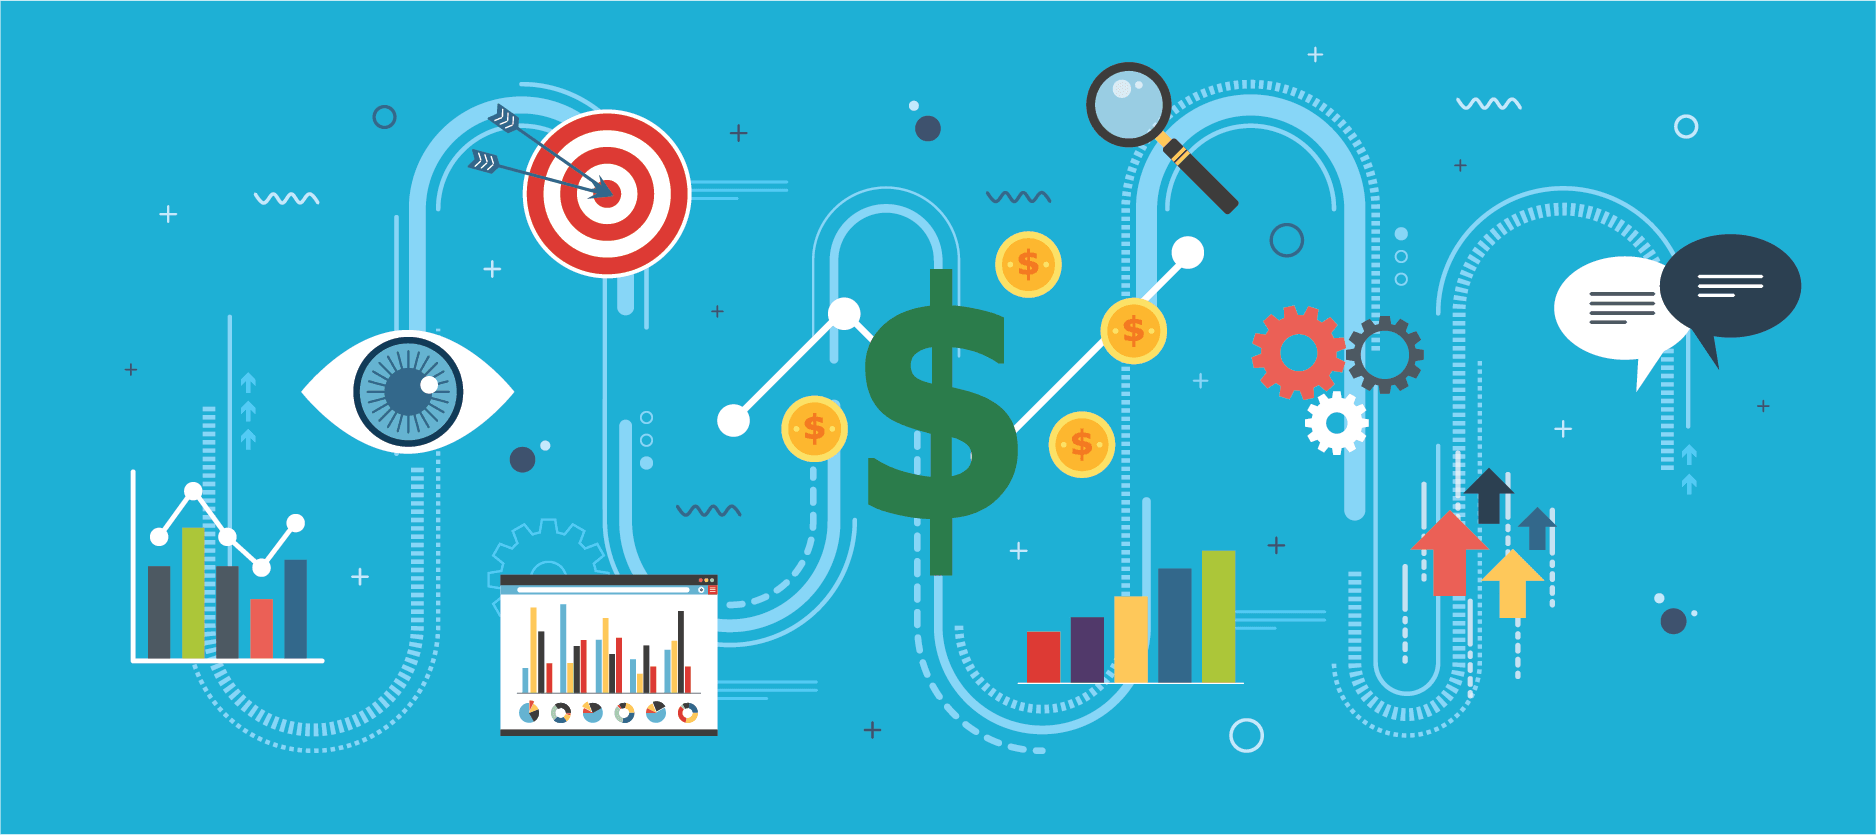 Cash flow and business intelligence for marketing companies